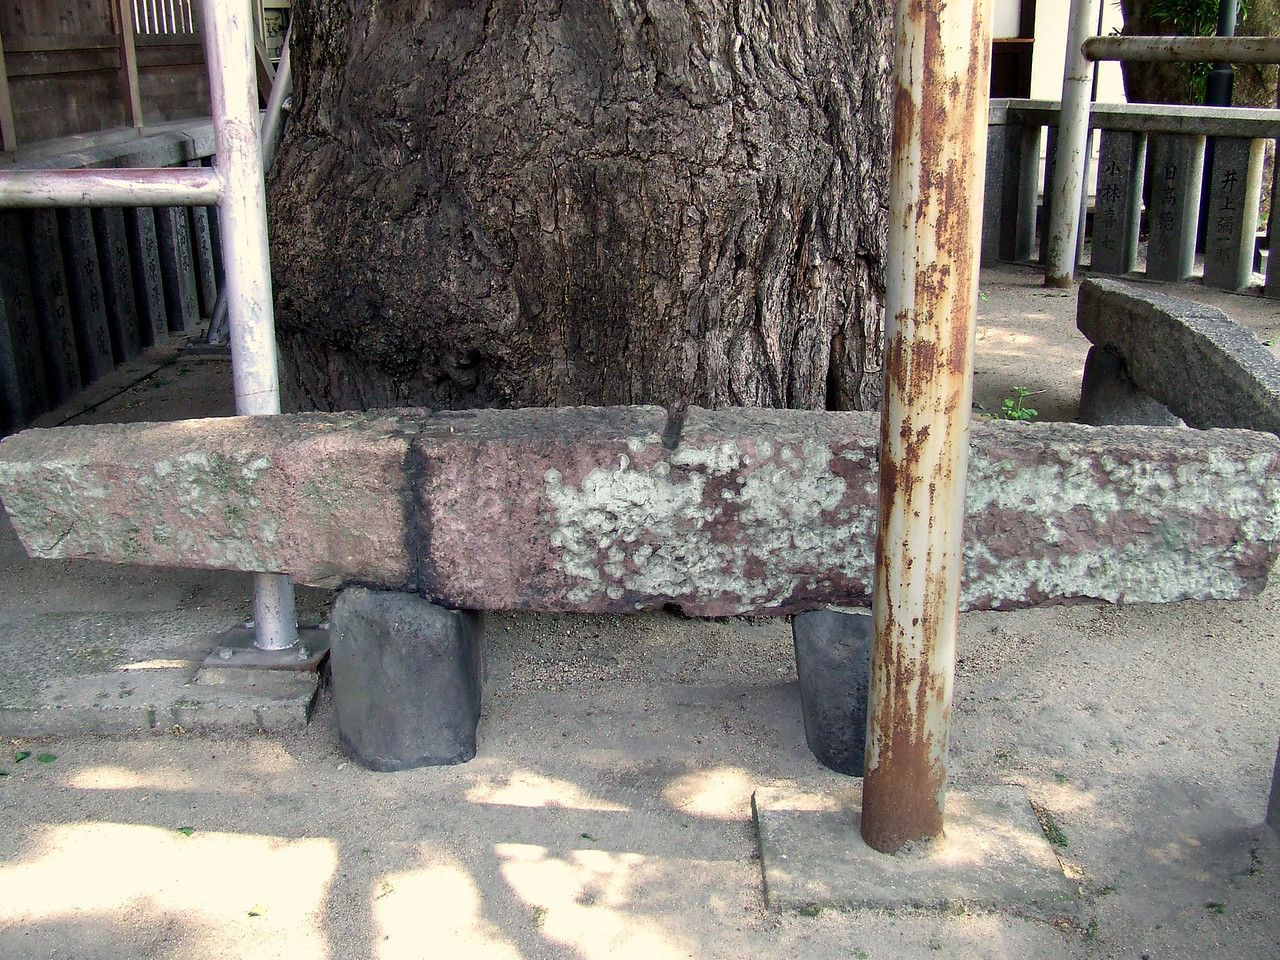 In front of the tree is this venerable stone. It was used as an anchor on one of the ships commanded by Kublai Khan in his failed attempt to conquer Japan in the late 13th century.